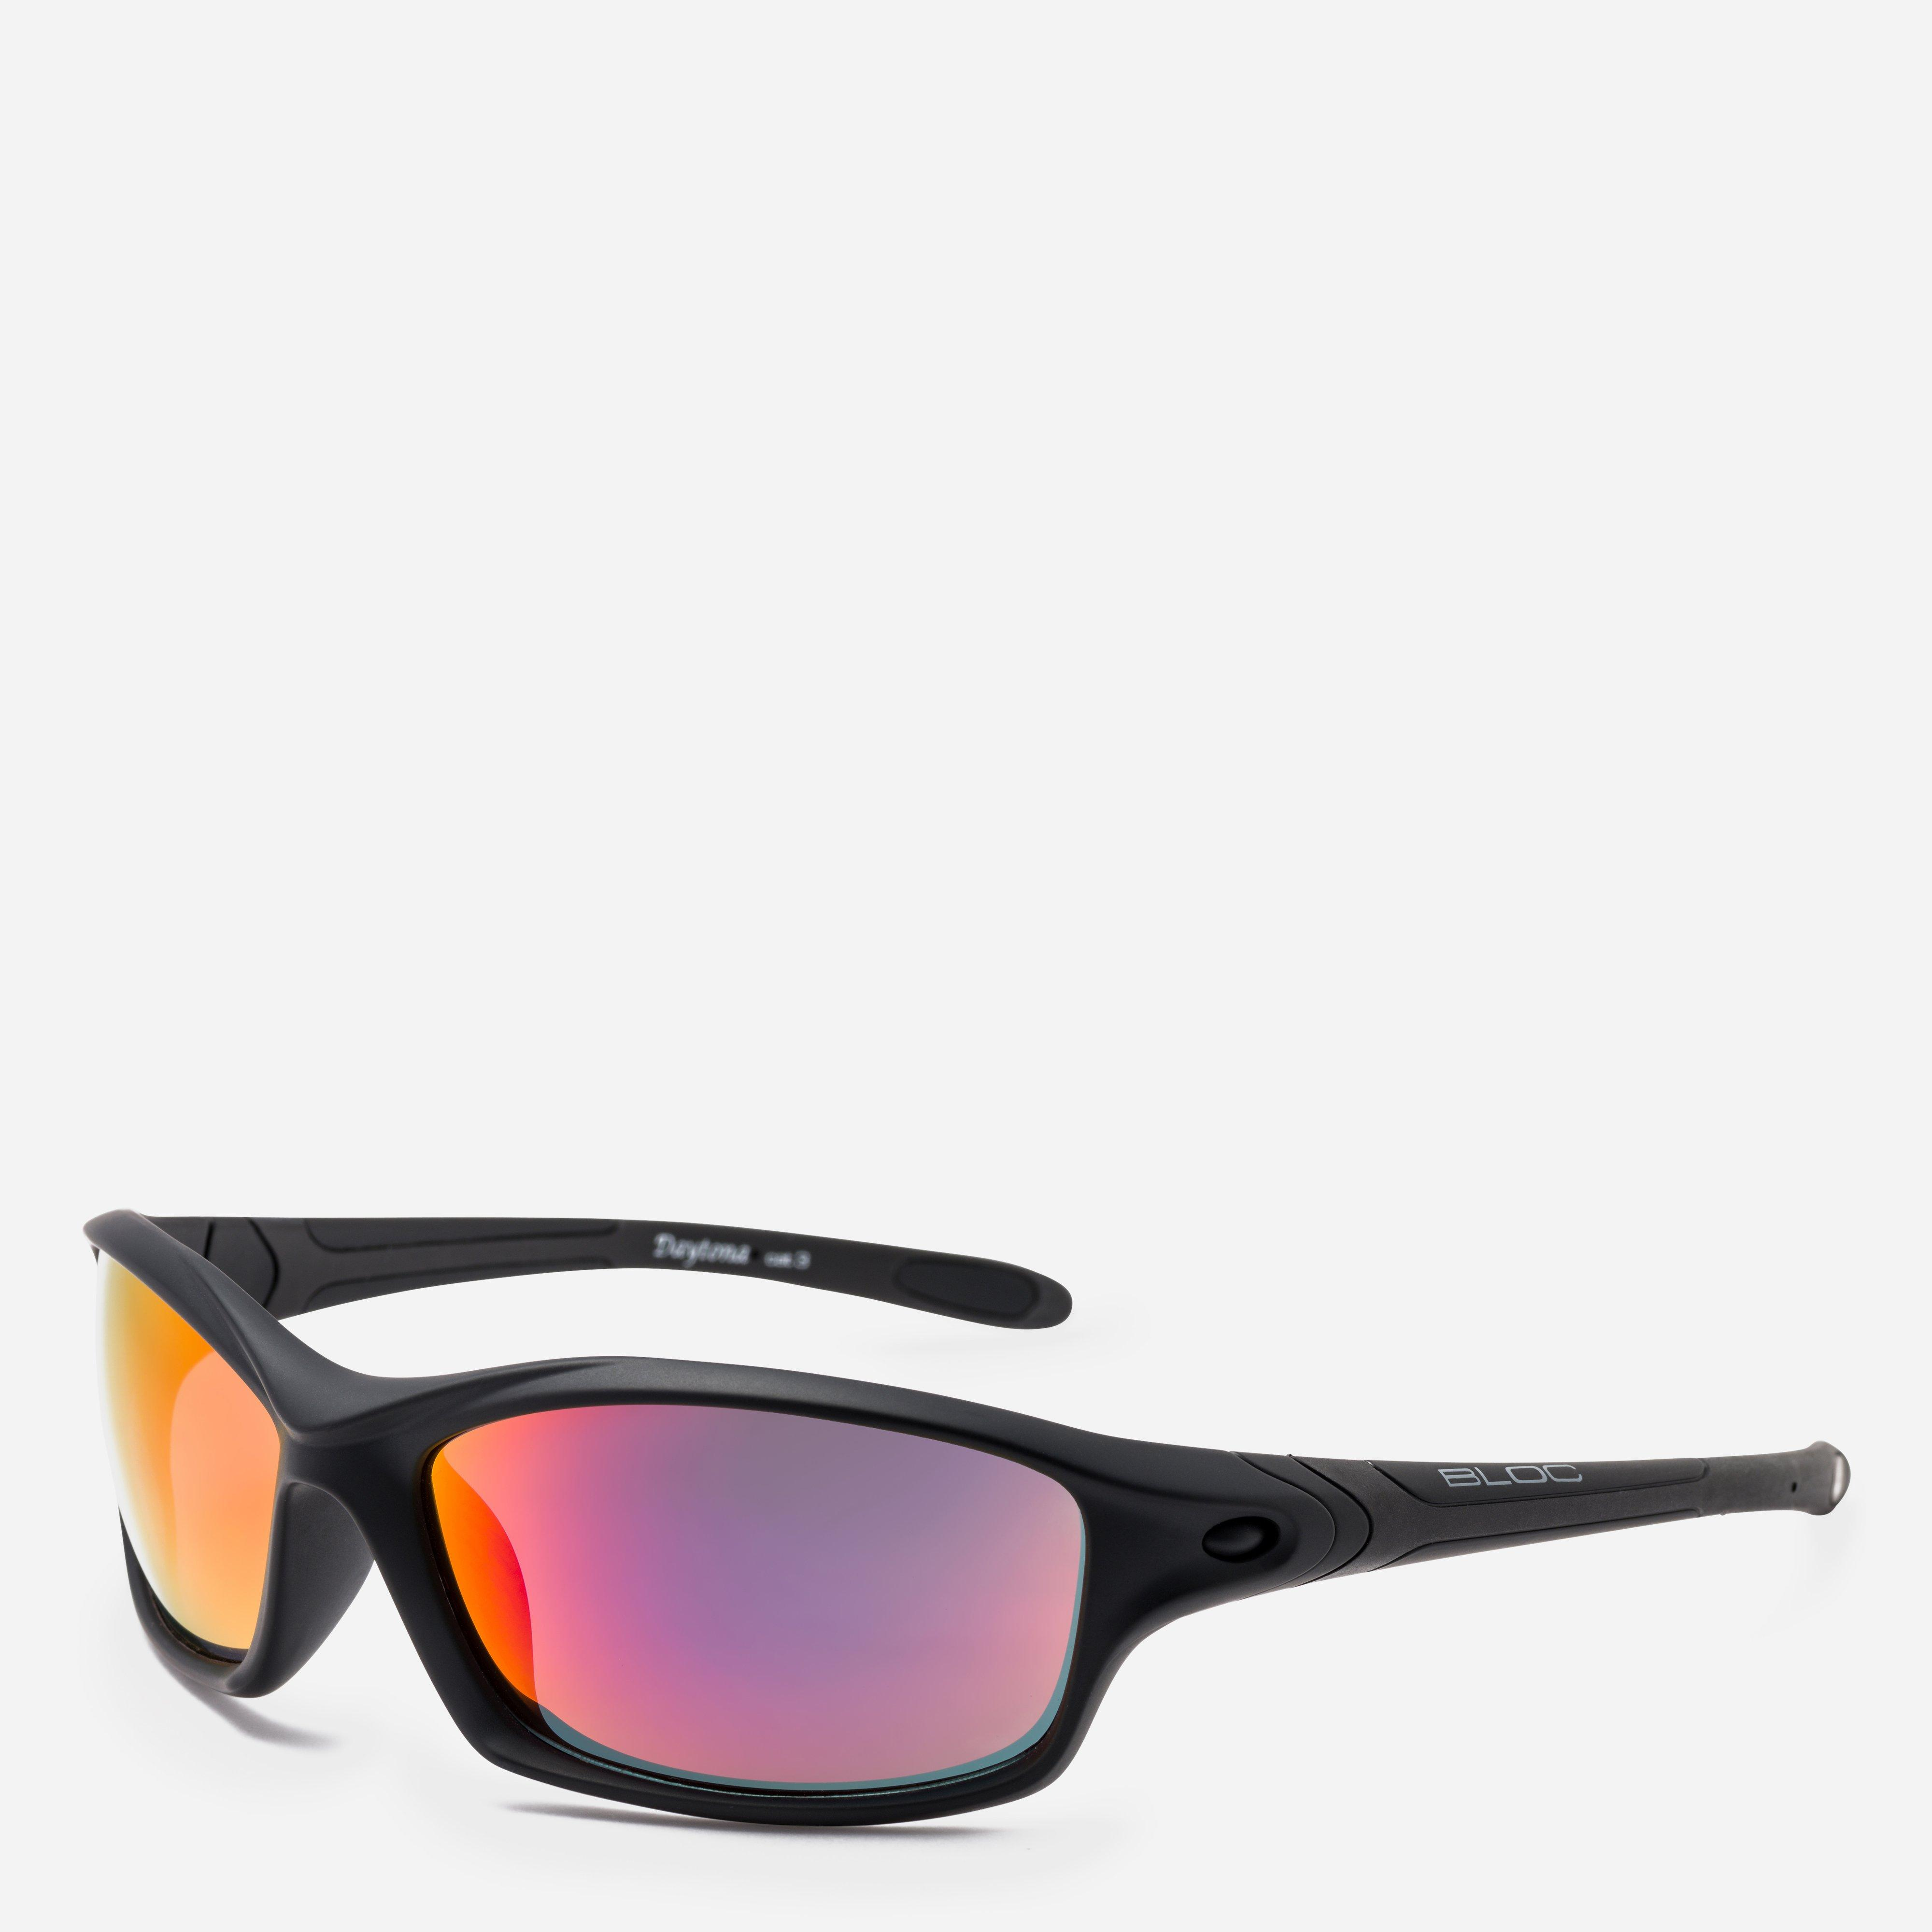 Bloc Daytona XR60 Sunglasses, Black